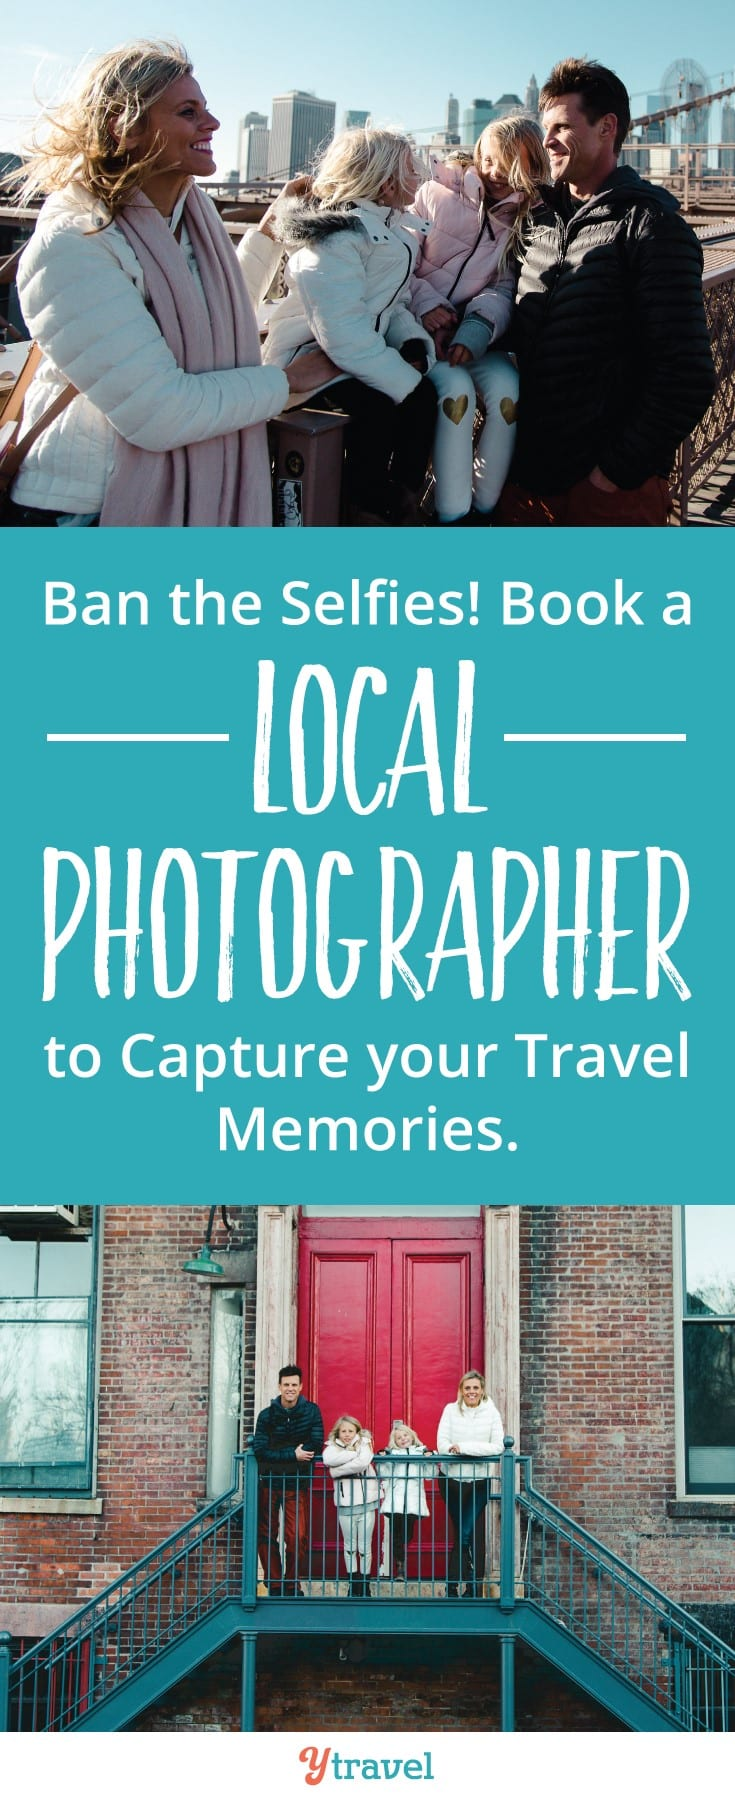 Book a local photographer to record your holiday memories. We experienced a local photography session with Wanderloud in New York City. I love looking at these professional photos of our travel memories now. It's a worthwhile experience. Read the post to learn more about how it works.